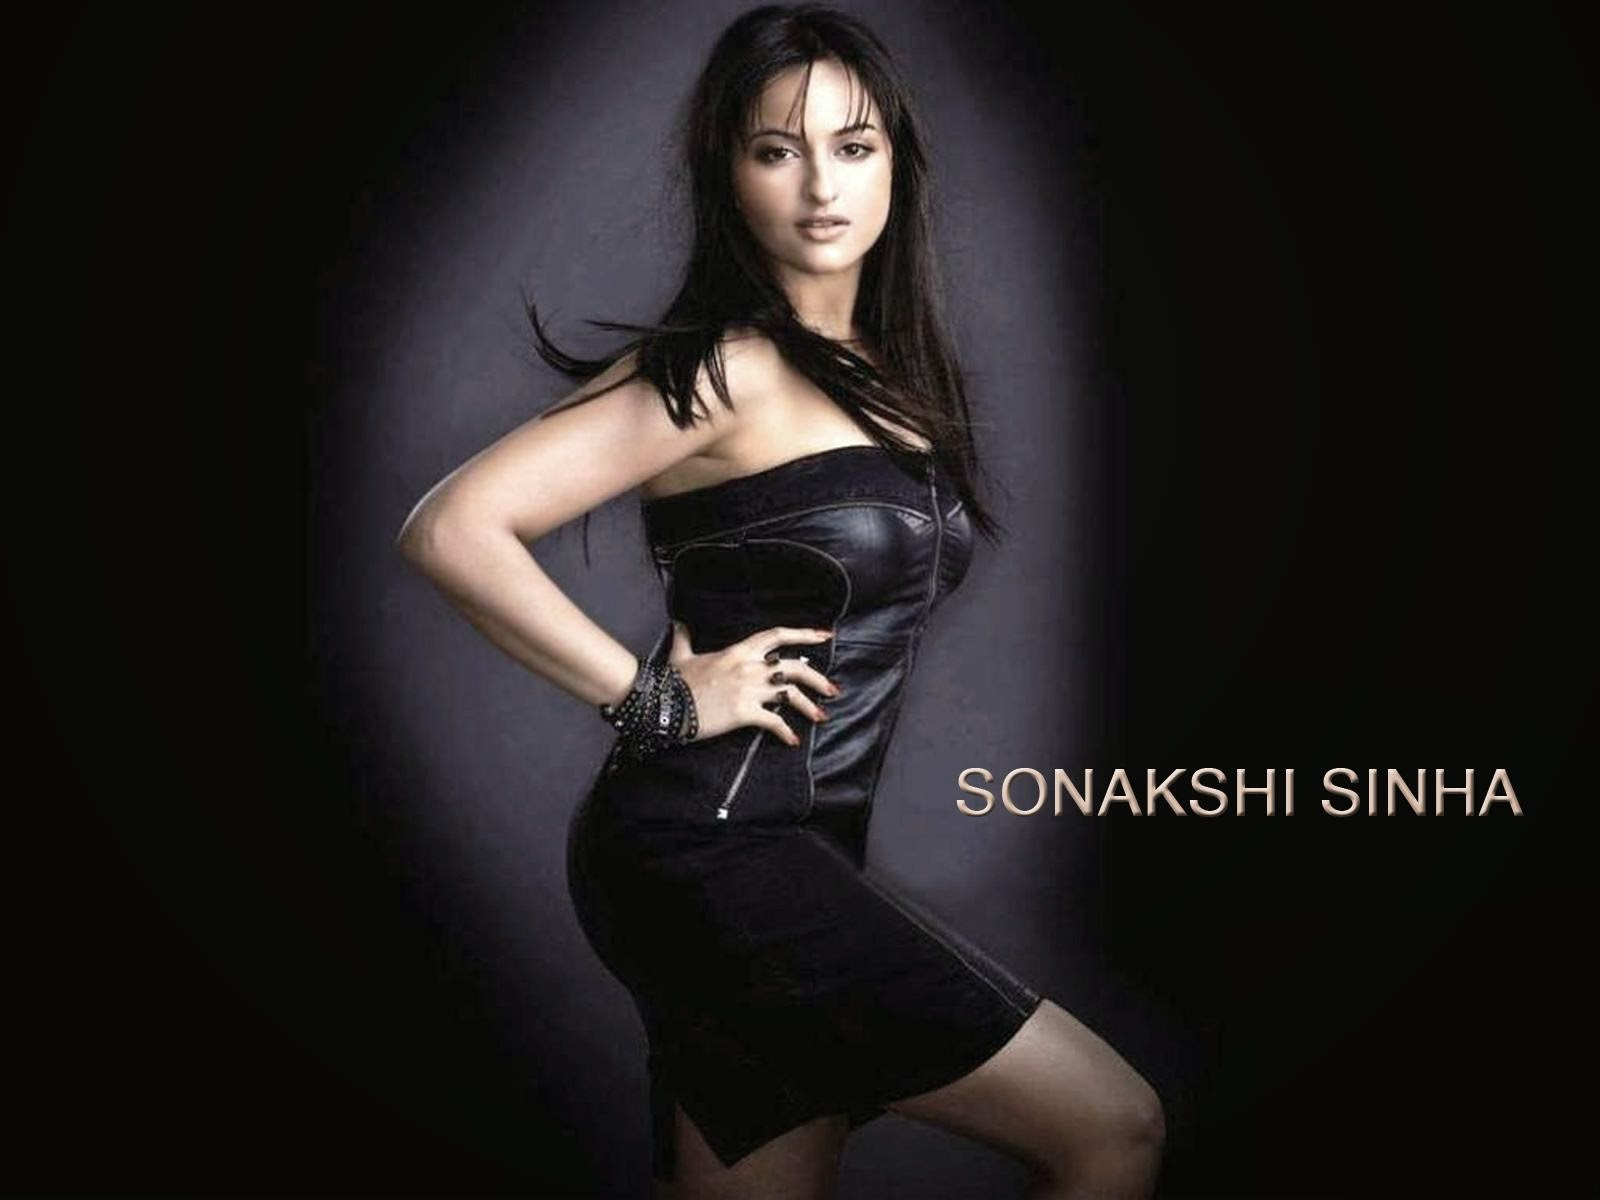 Sonakshi Sinha Hd Wallpapers: ALL IN ONE WALLPAPERS: Sonakshi Sinha Hd Wallpapers